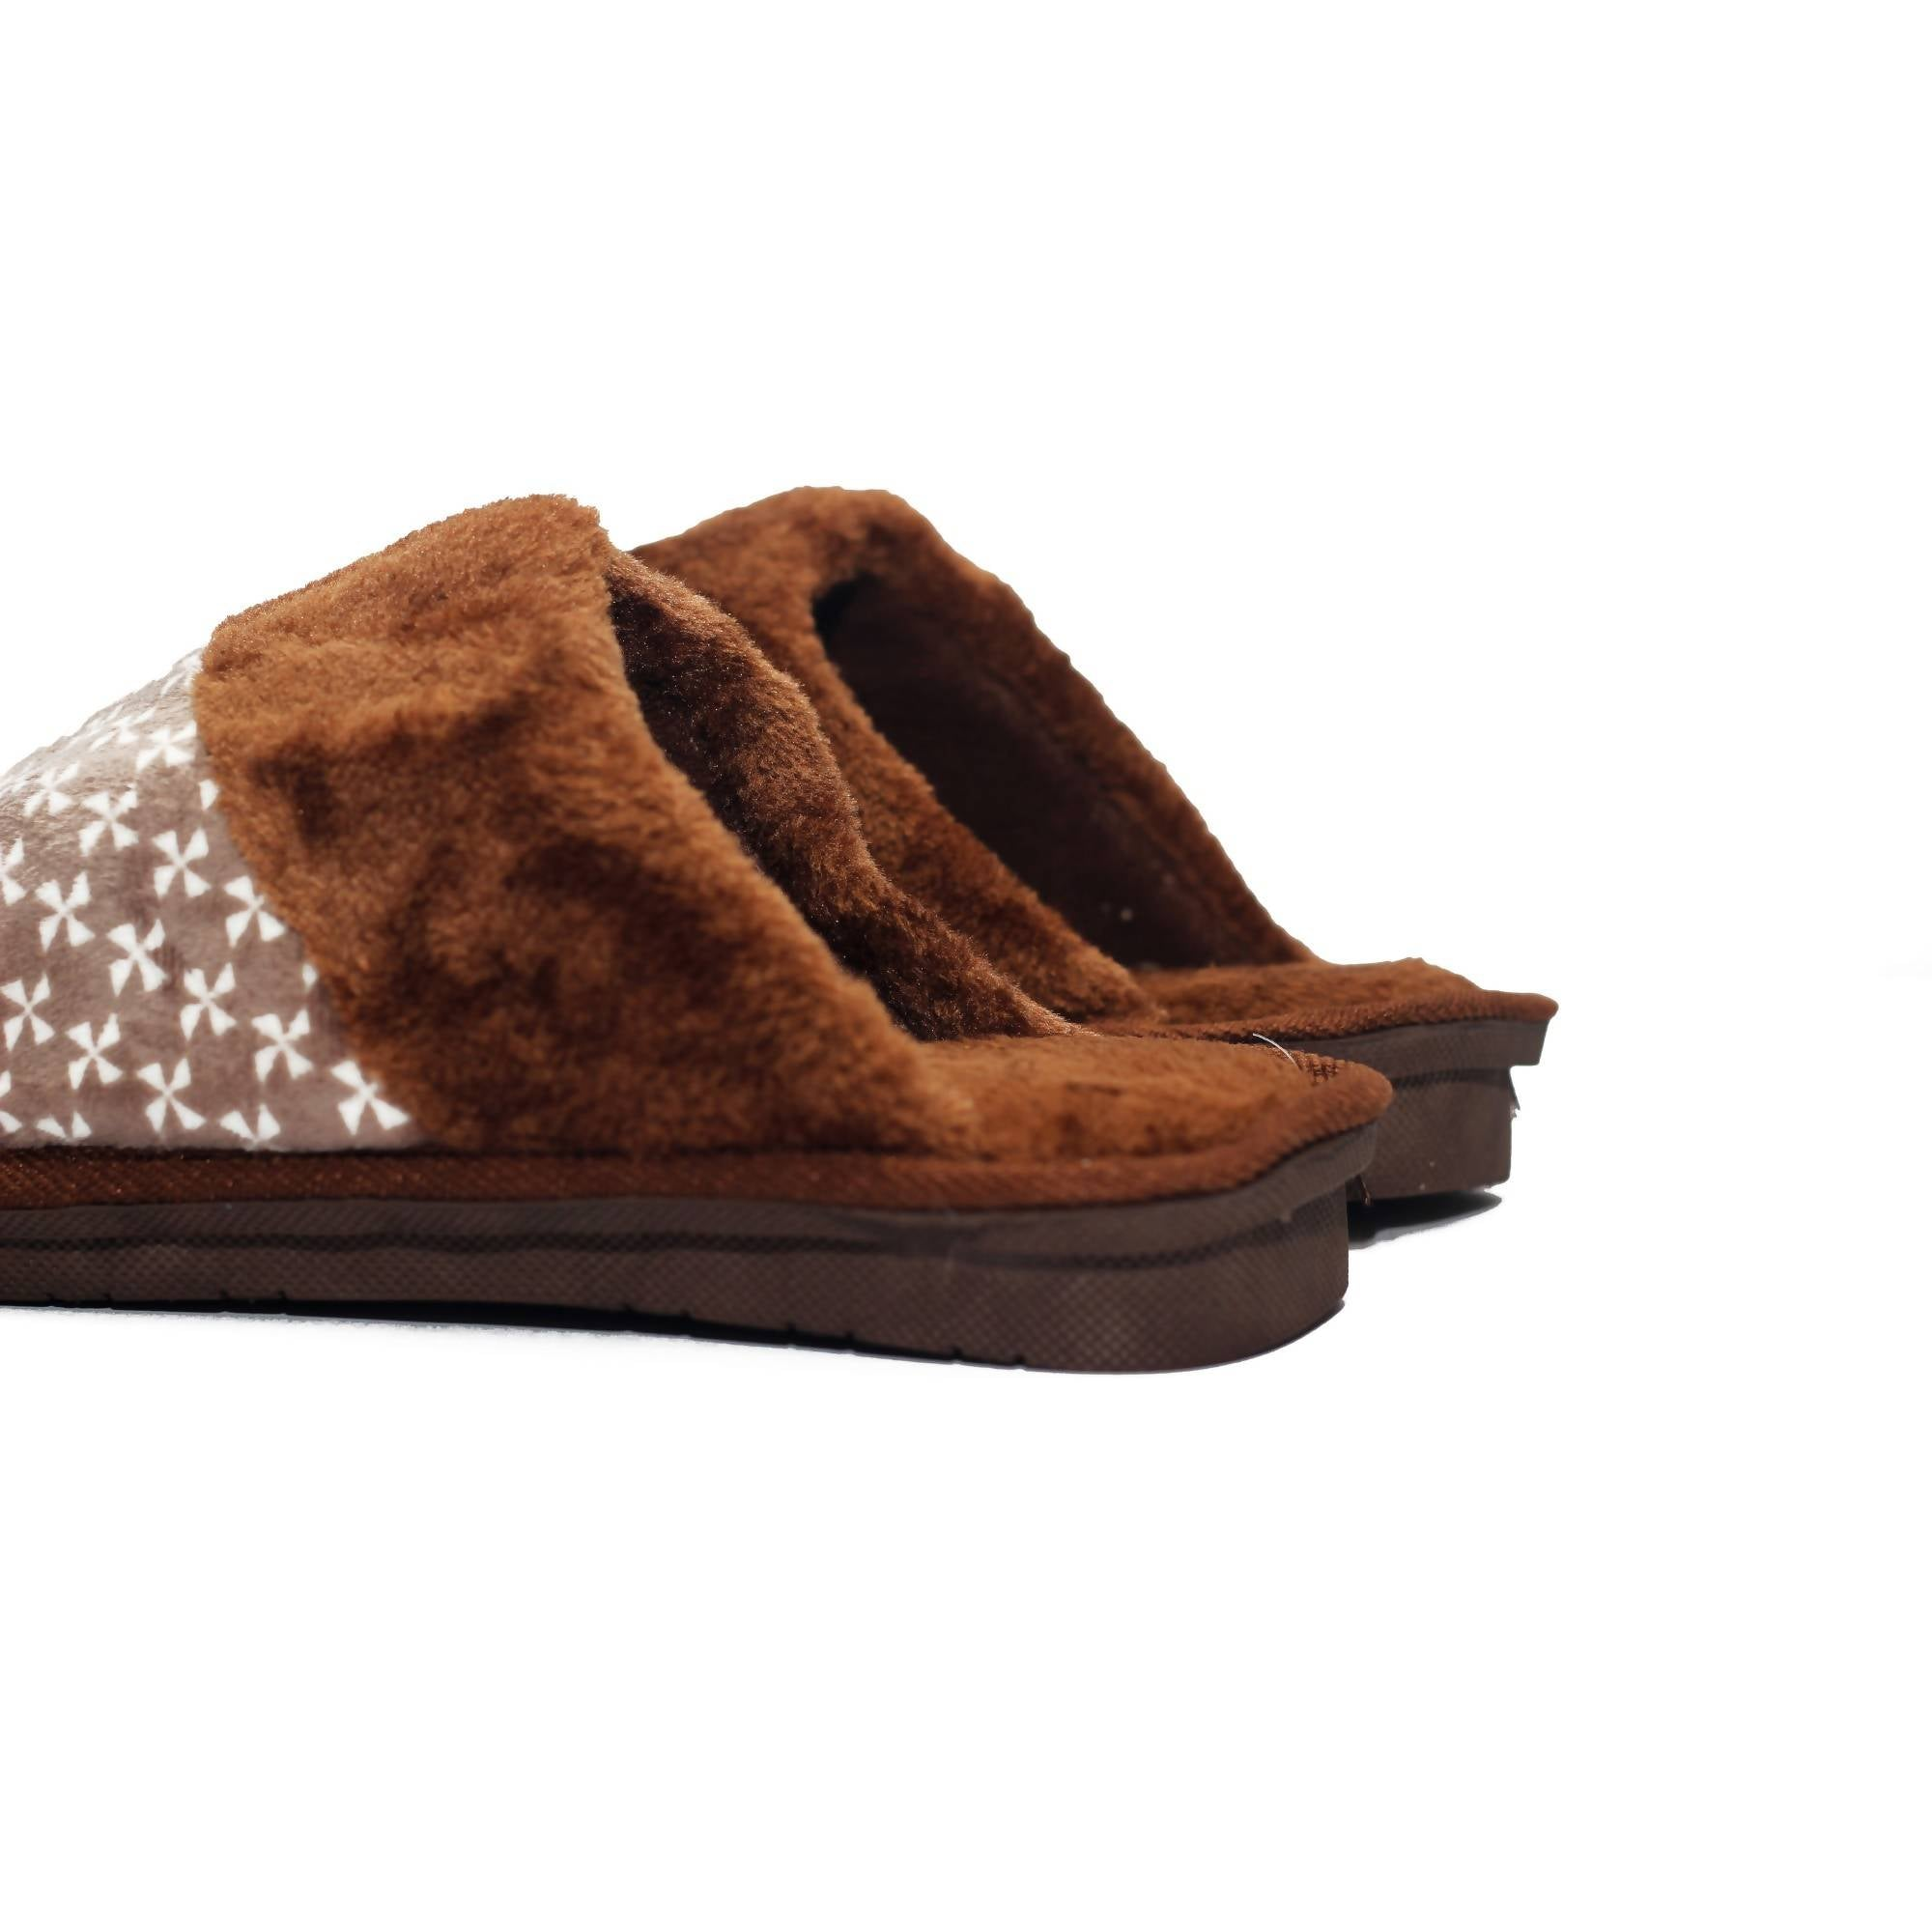 Beneta Chill Warm Woolen Slippers